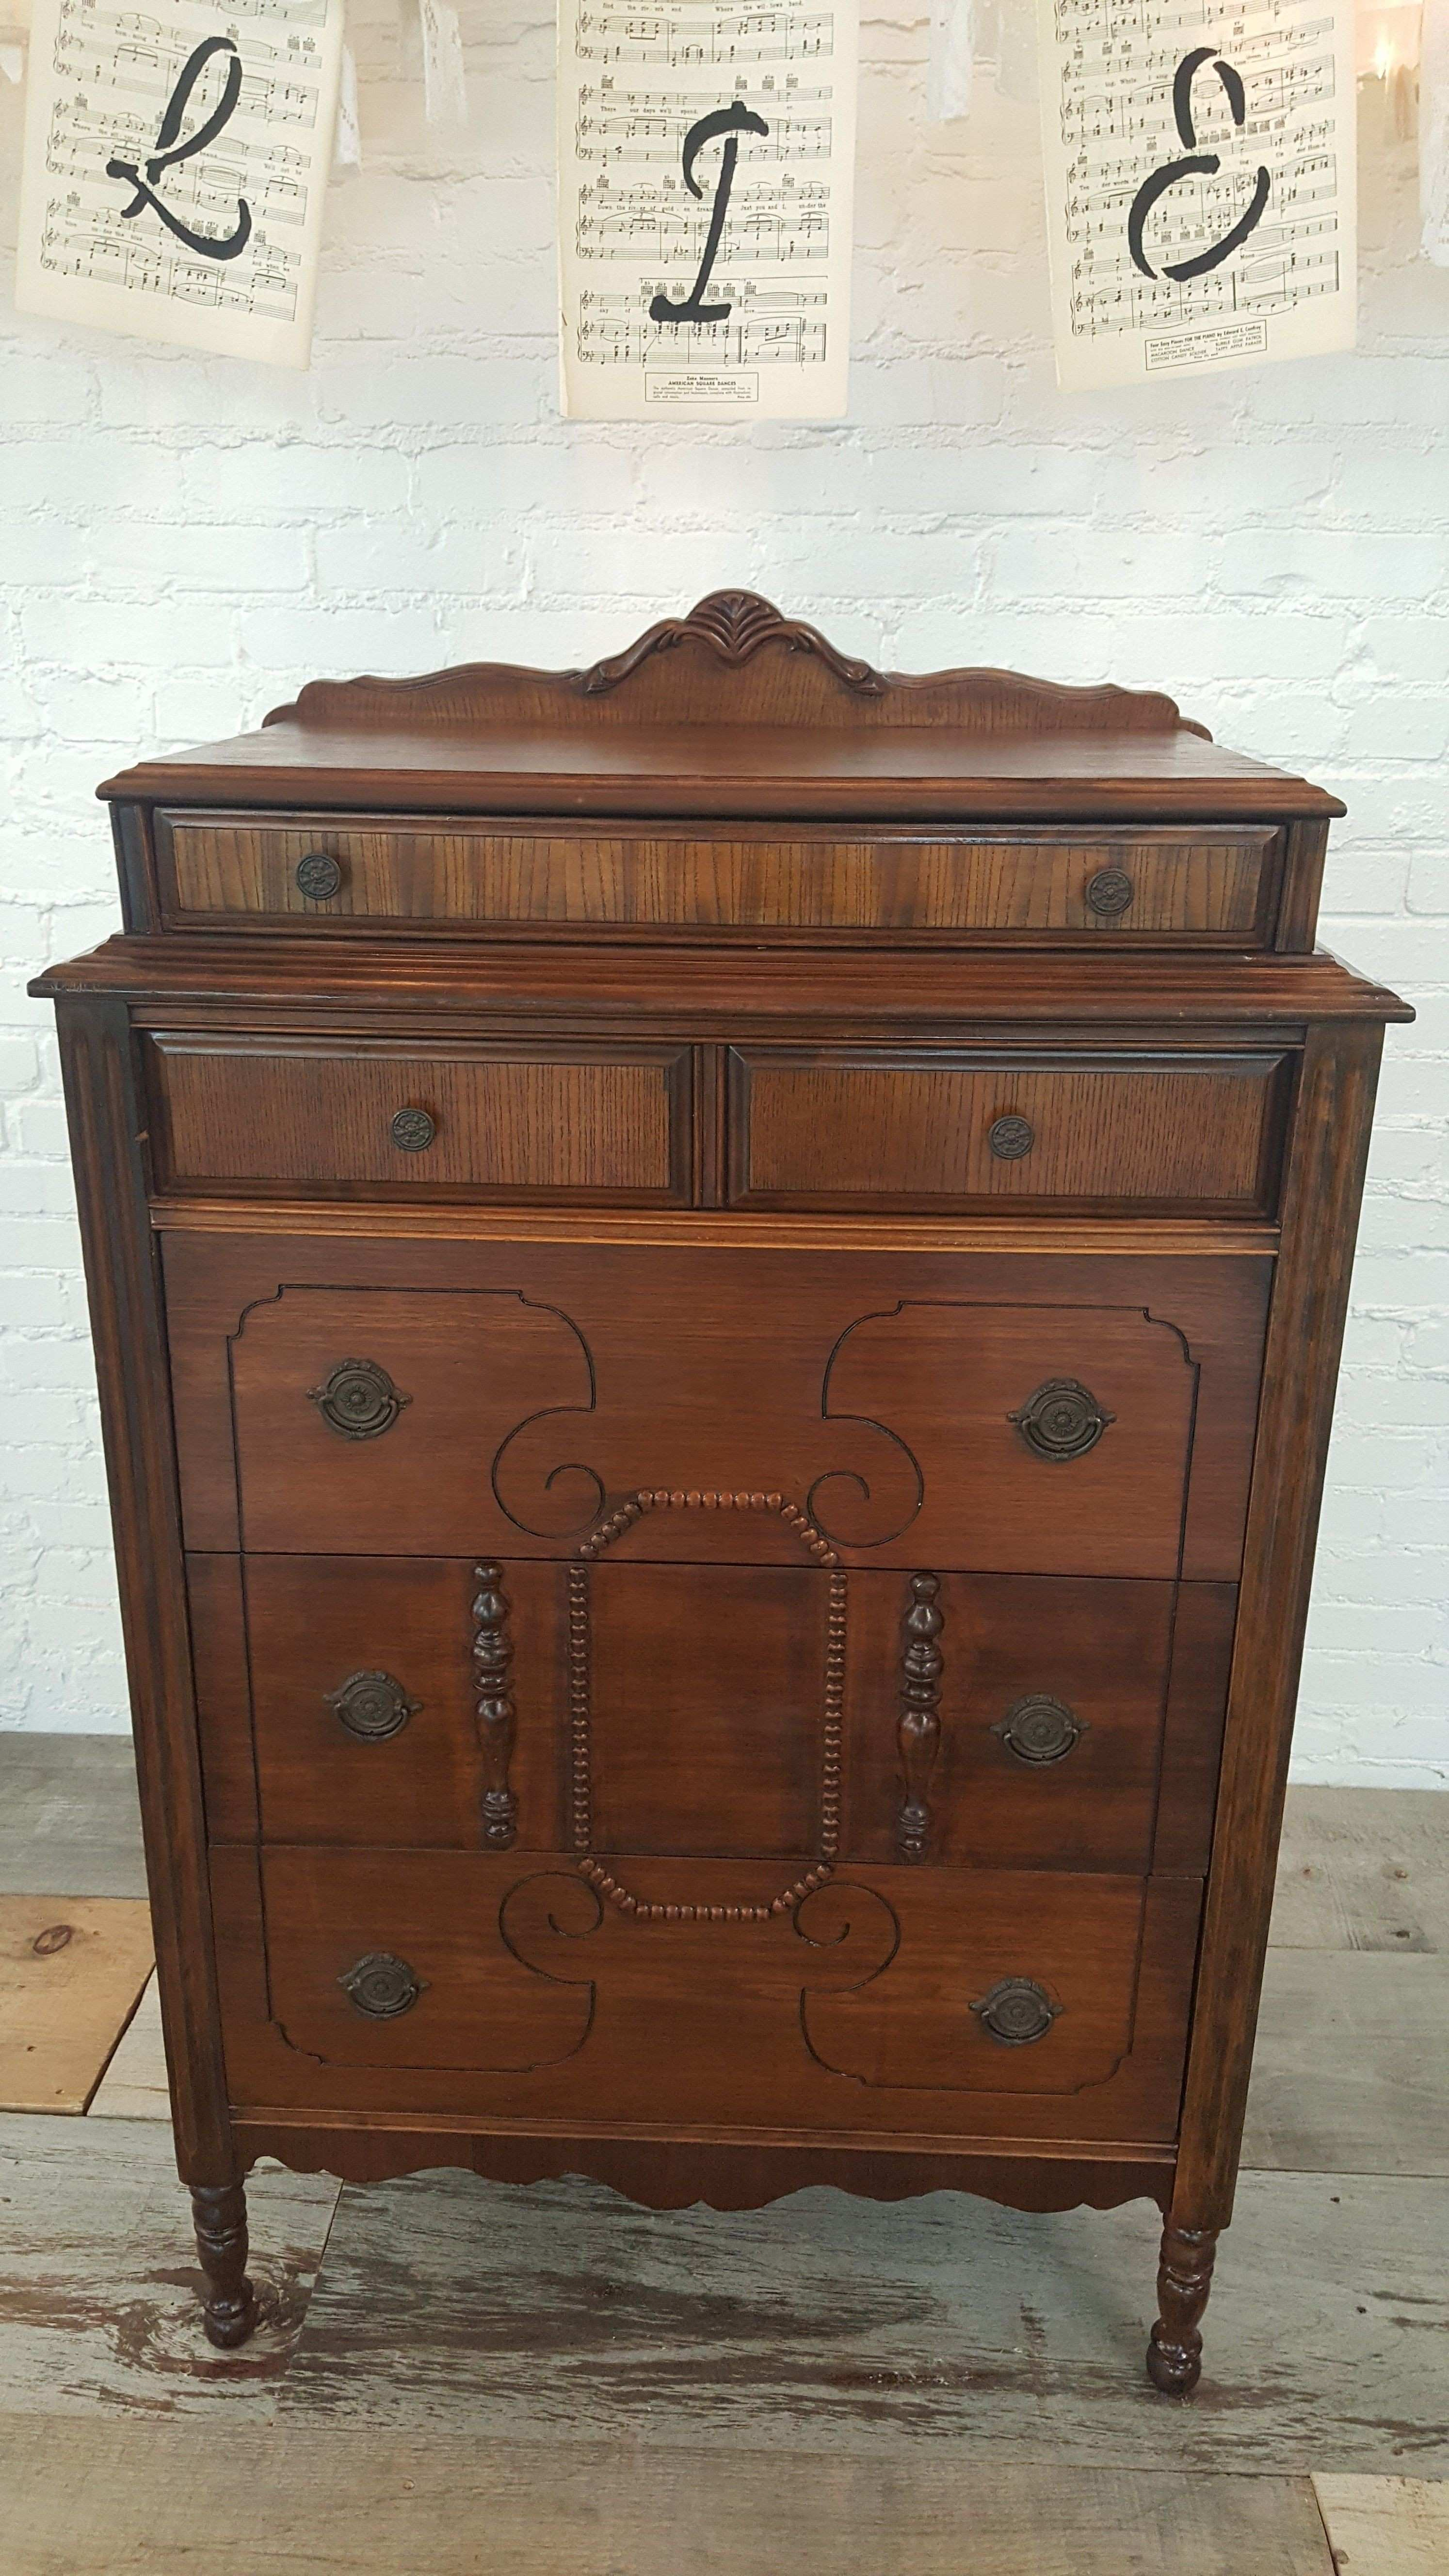 Great original piece available this Vintage Victorian Chest Dresser